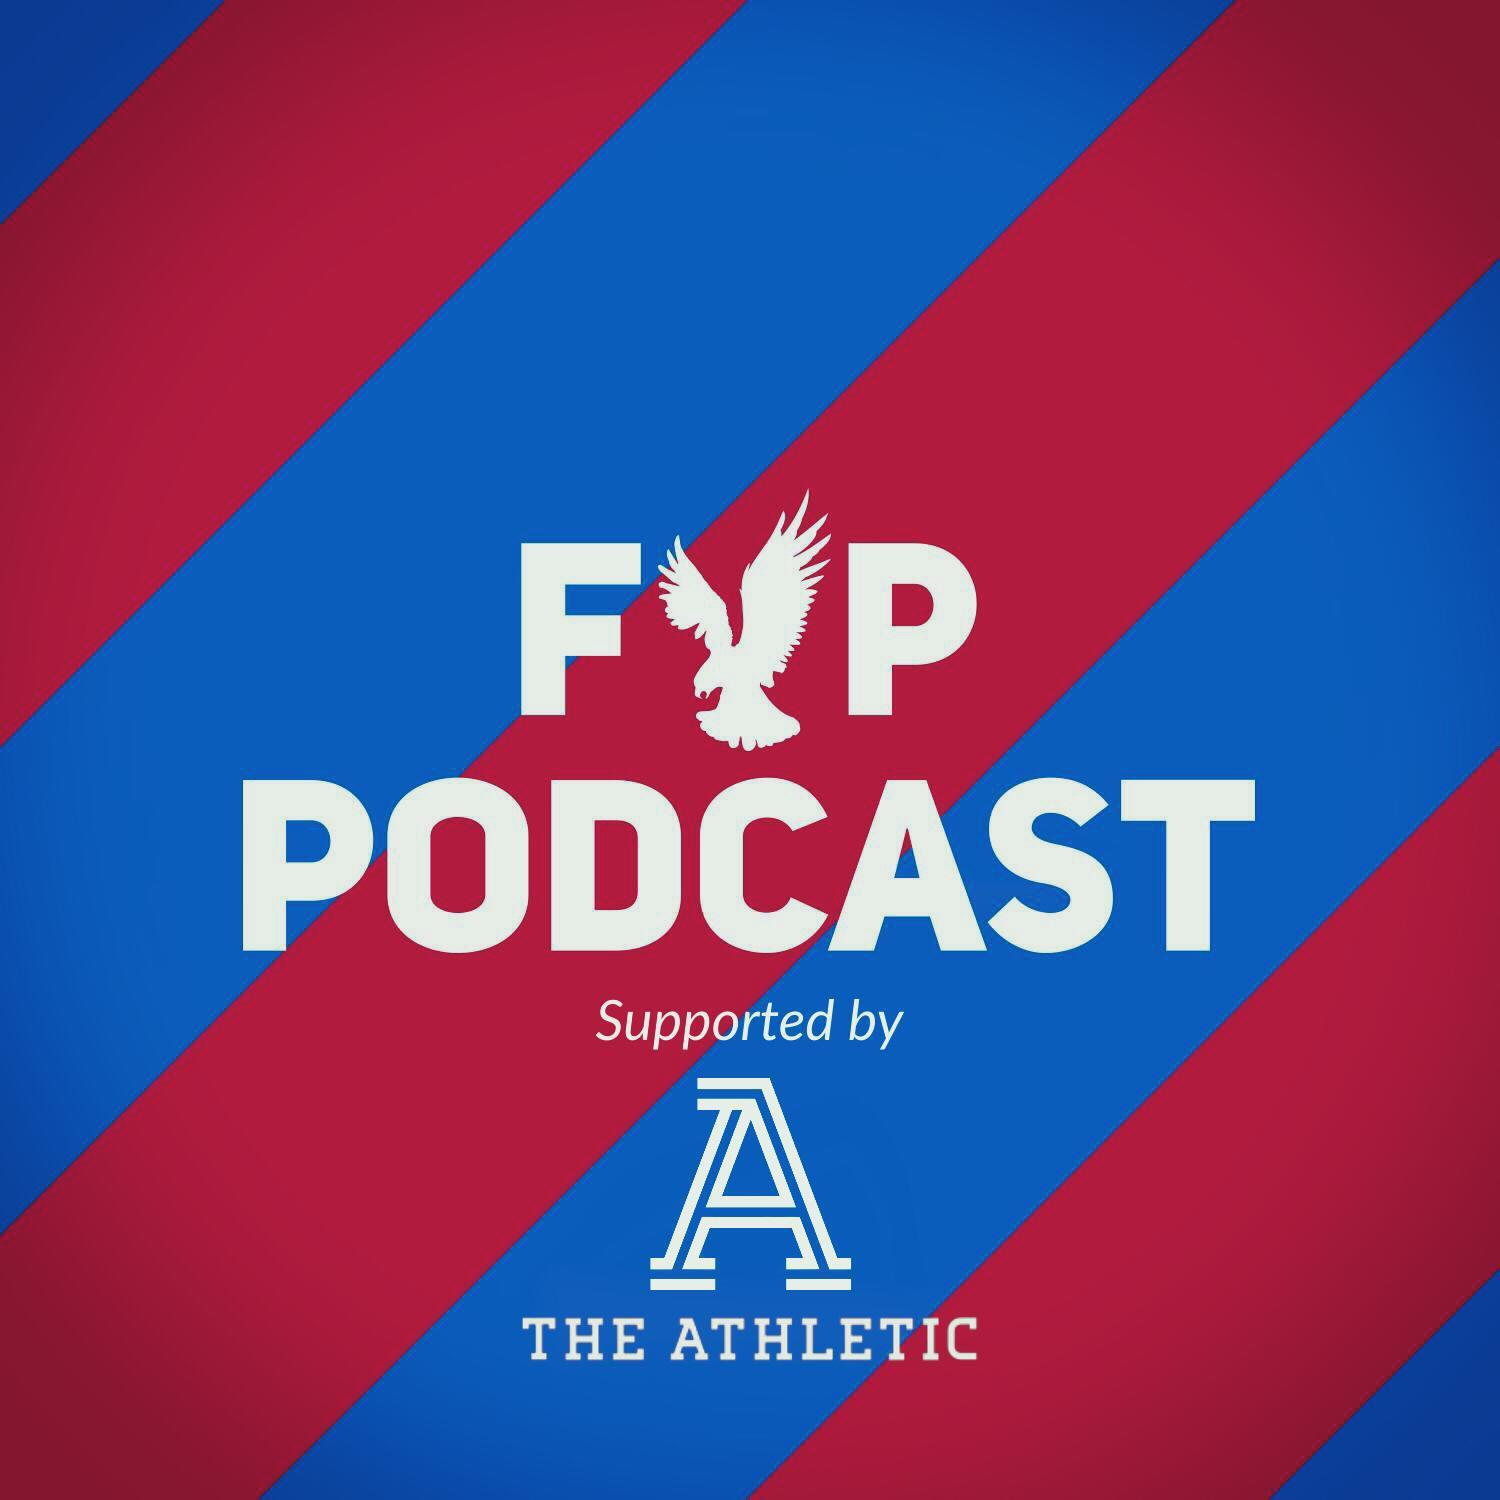 FYP Podcast 296 - Ayew having fun?